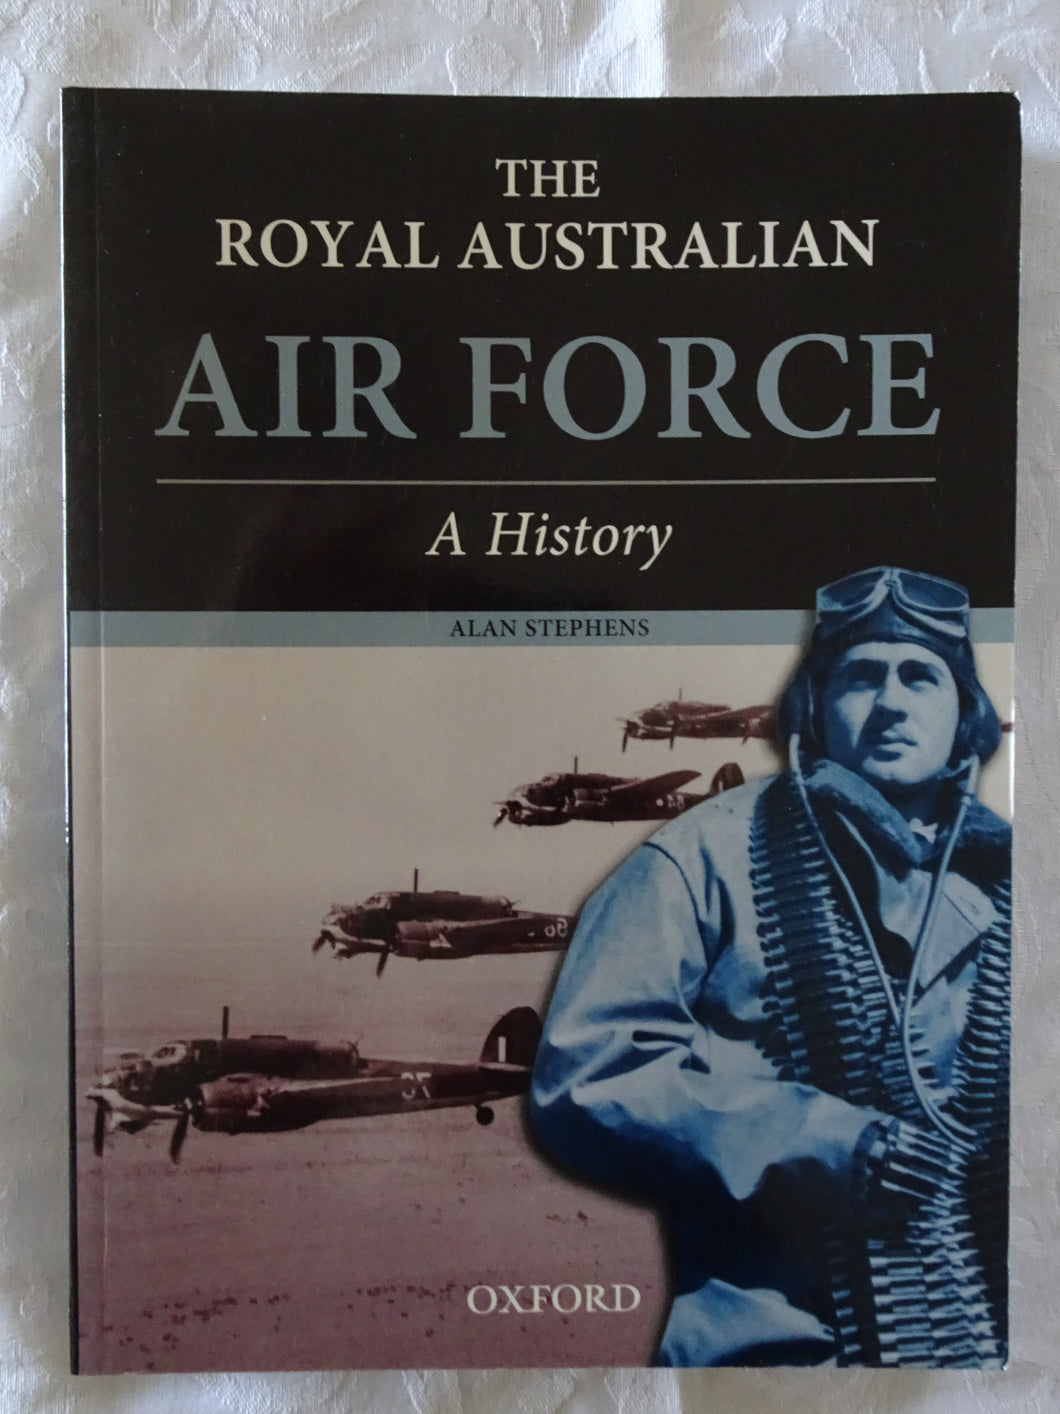 The Royal Australian Air force A History by Alan Stephens